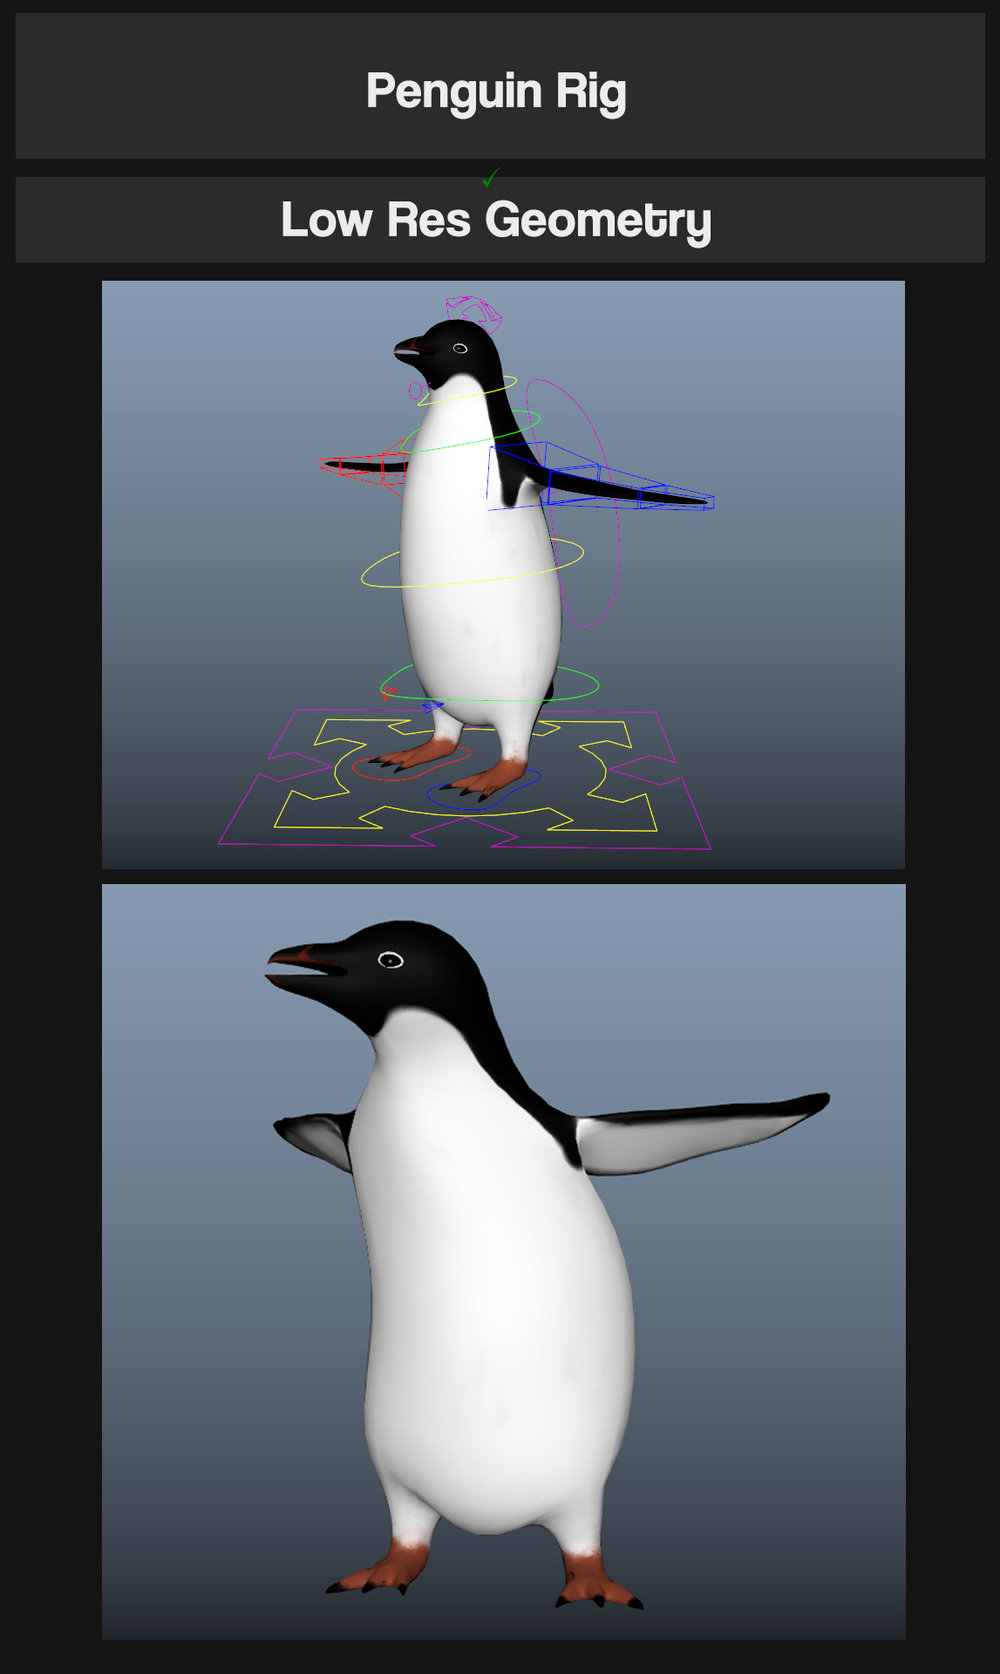 JT Penguin   After watching the making of Monty The Penguin by MPC i just had to have a go at making my own penguin rig! From my tests and moving the rig around, it's definitely good enough to create some decent animation!  I Hope you guys enjoy using it, and as always - please share your work with me so i can see my rigs in action! I'd love to see what people come up with!